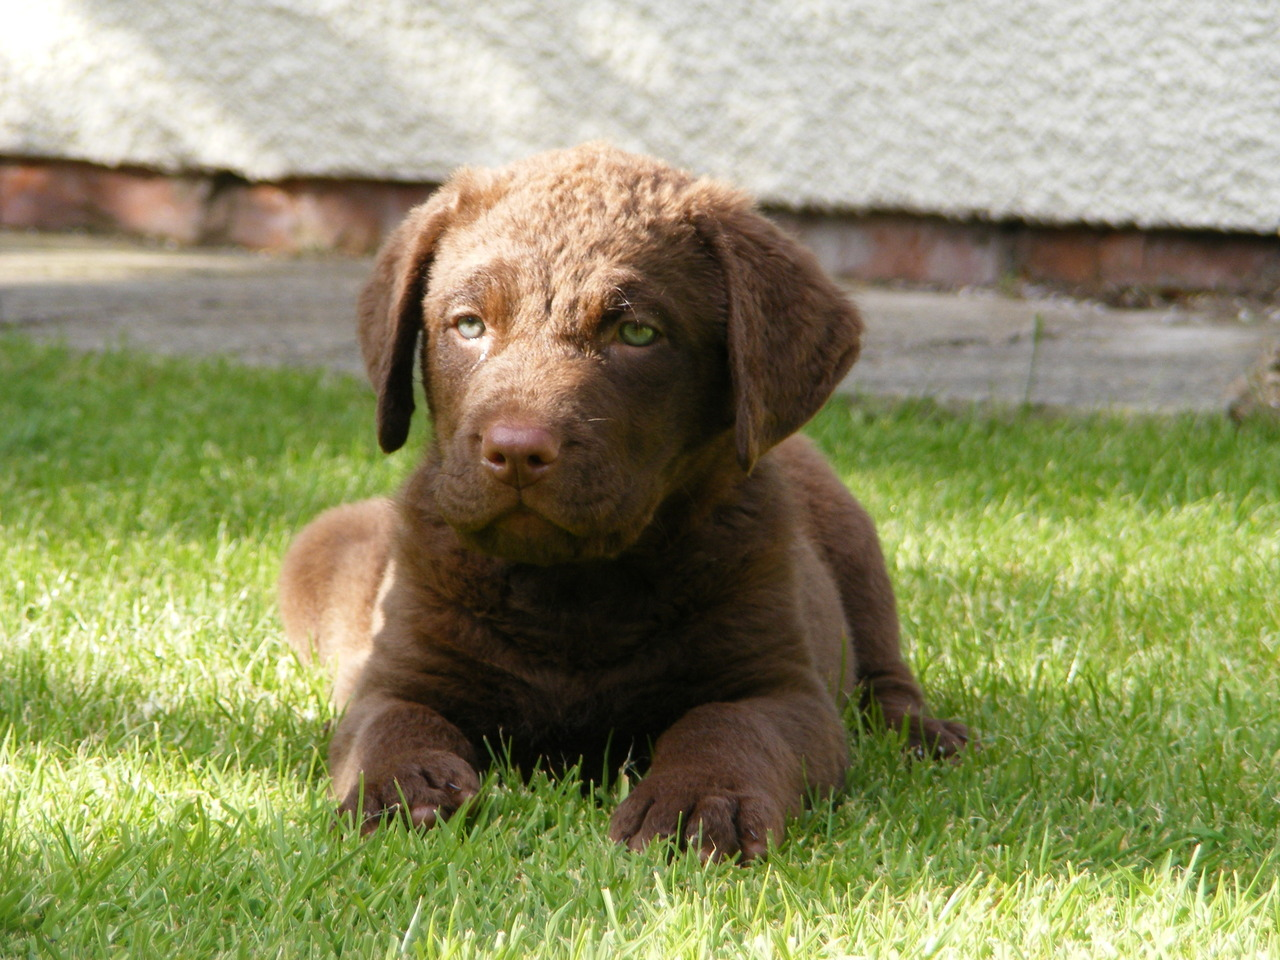 Maisey Pink ….. the newest addition to our family. A 7 week old Chesapeake Bay Retriever. Actually she's my Mum's new puppy but we might have to borrow her once in a while as she is sooooo cute : )